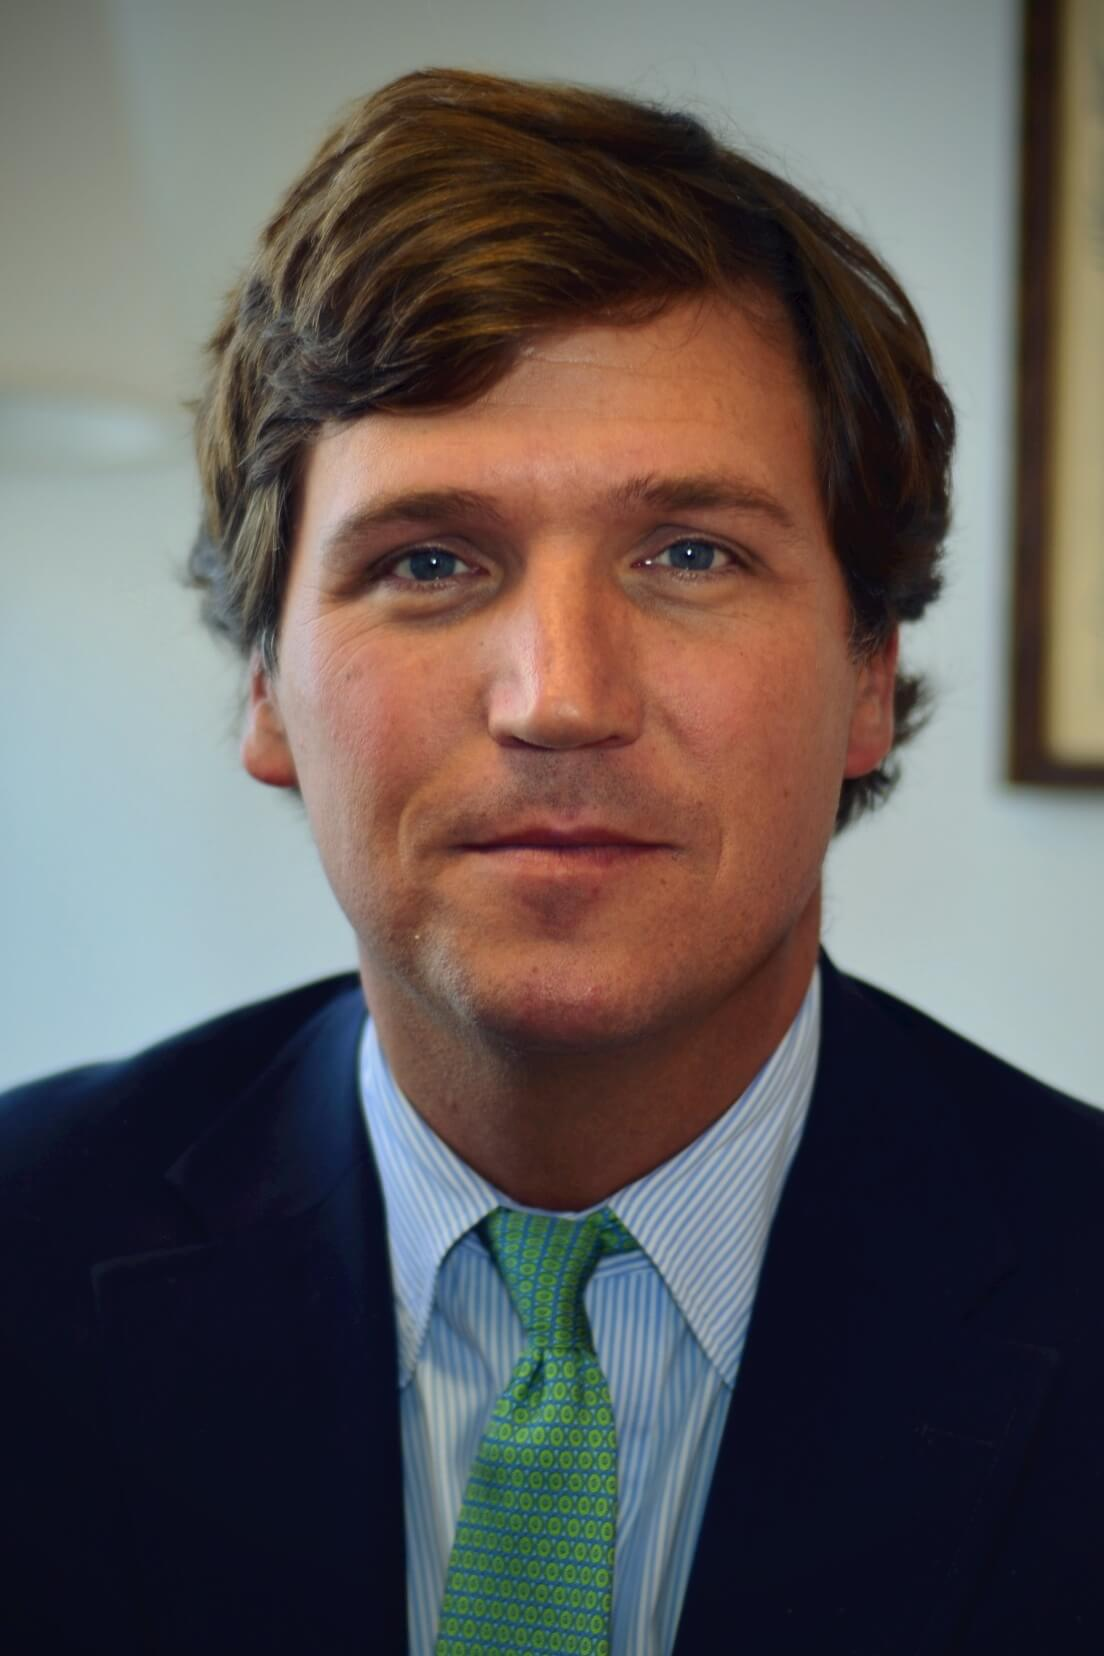 Fox News host Tucker Carlson said Monday that Mexico had been more successful than Russia in influencing US elections by packing the American